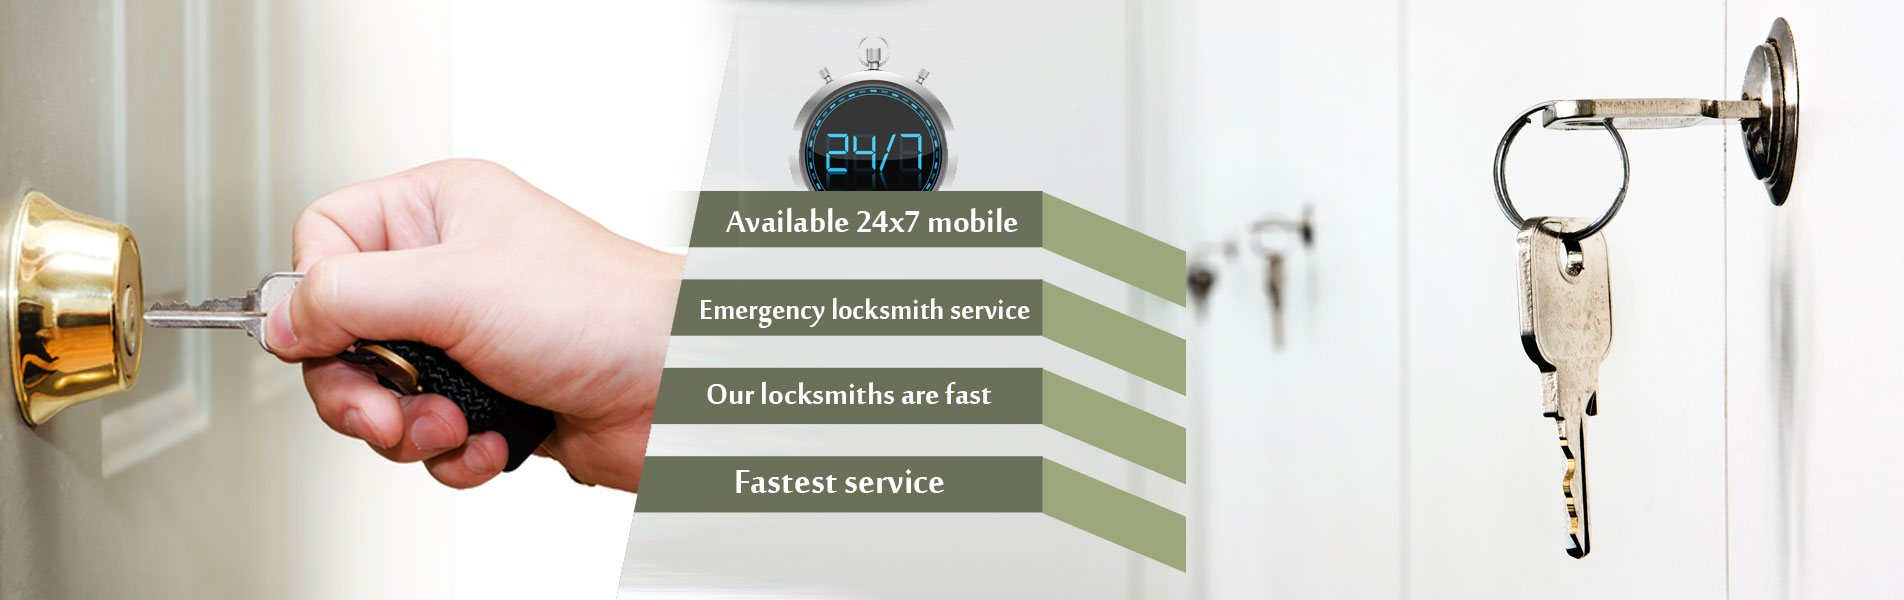 Cincinnati Advantage Locksmith, Cincinnati, OH 513-642-8018